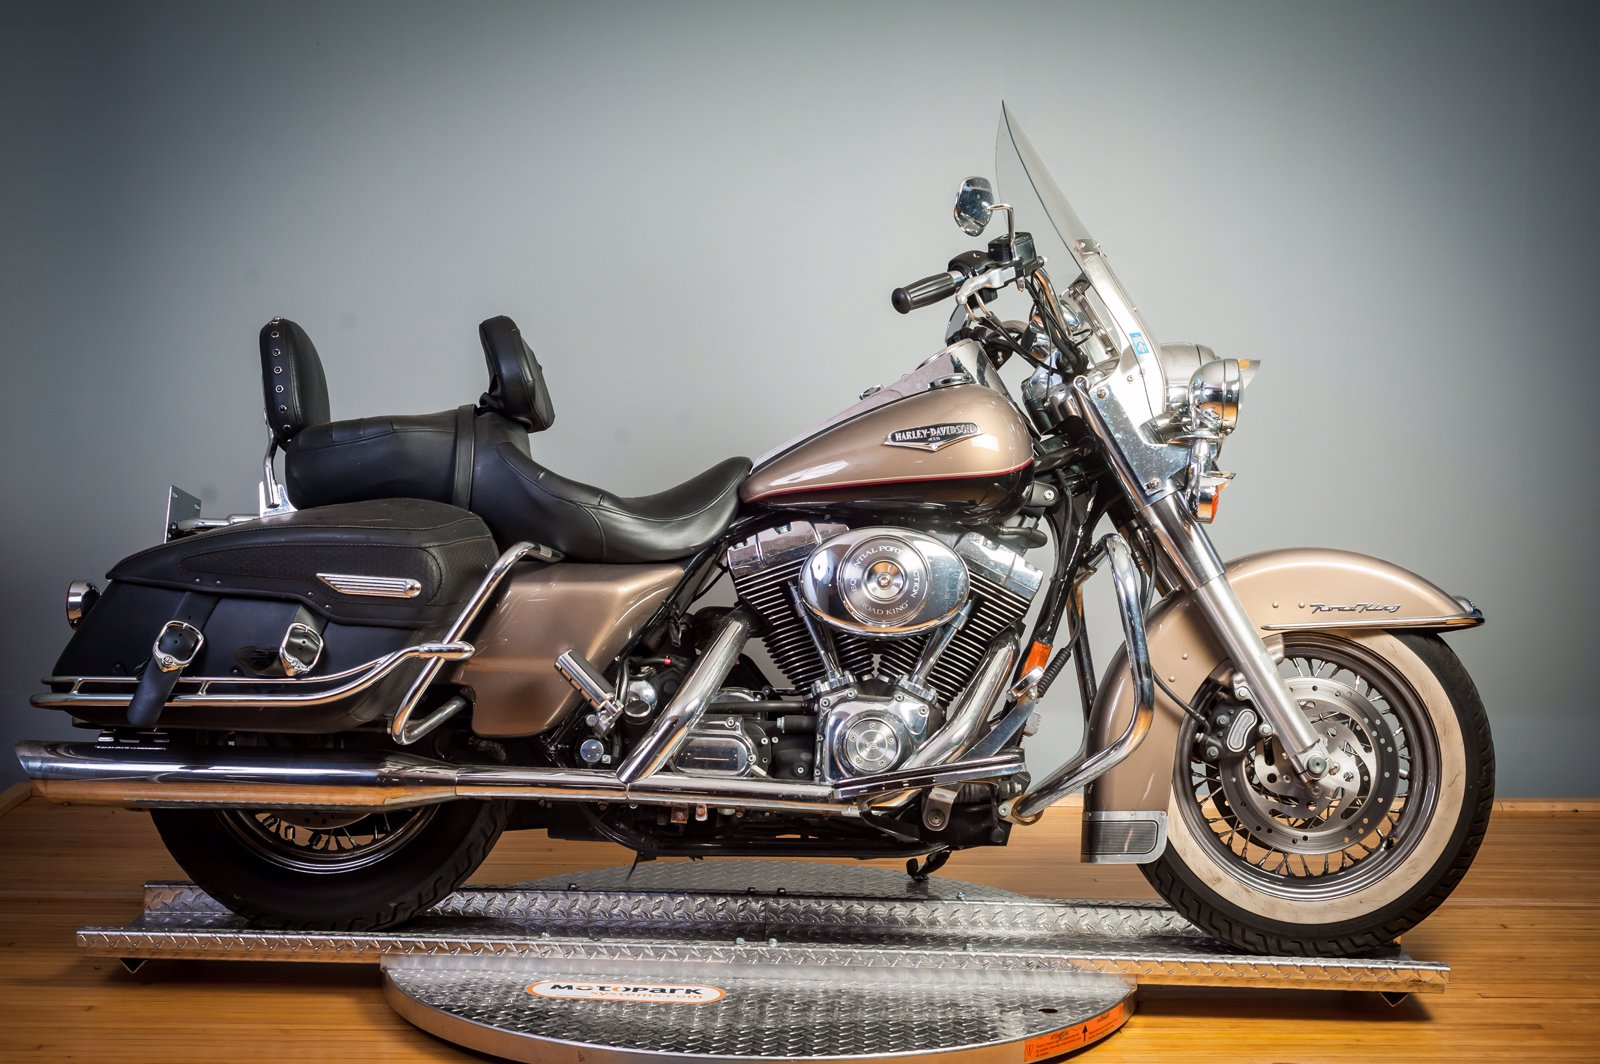 Pre-Owned 2005 Harley-Davidson Road King Classic FLHRC